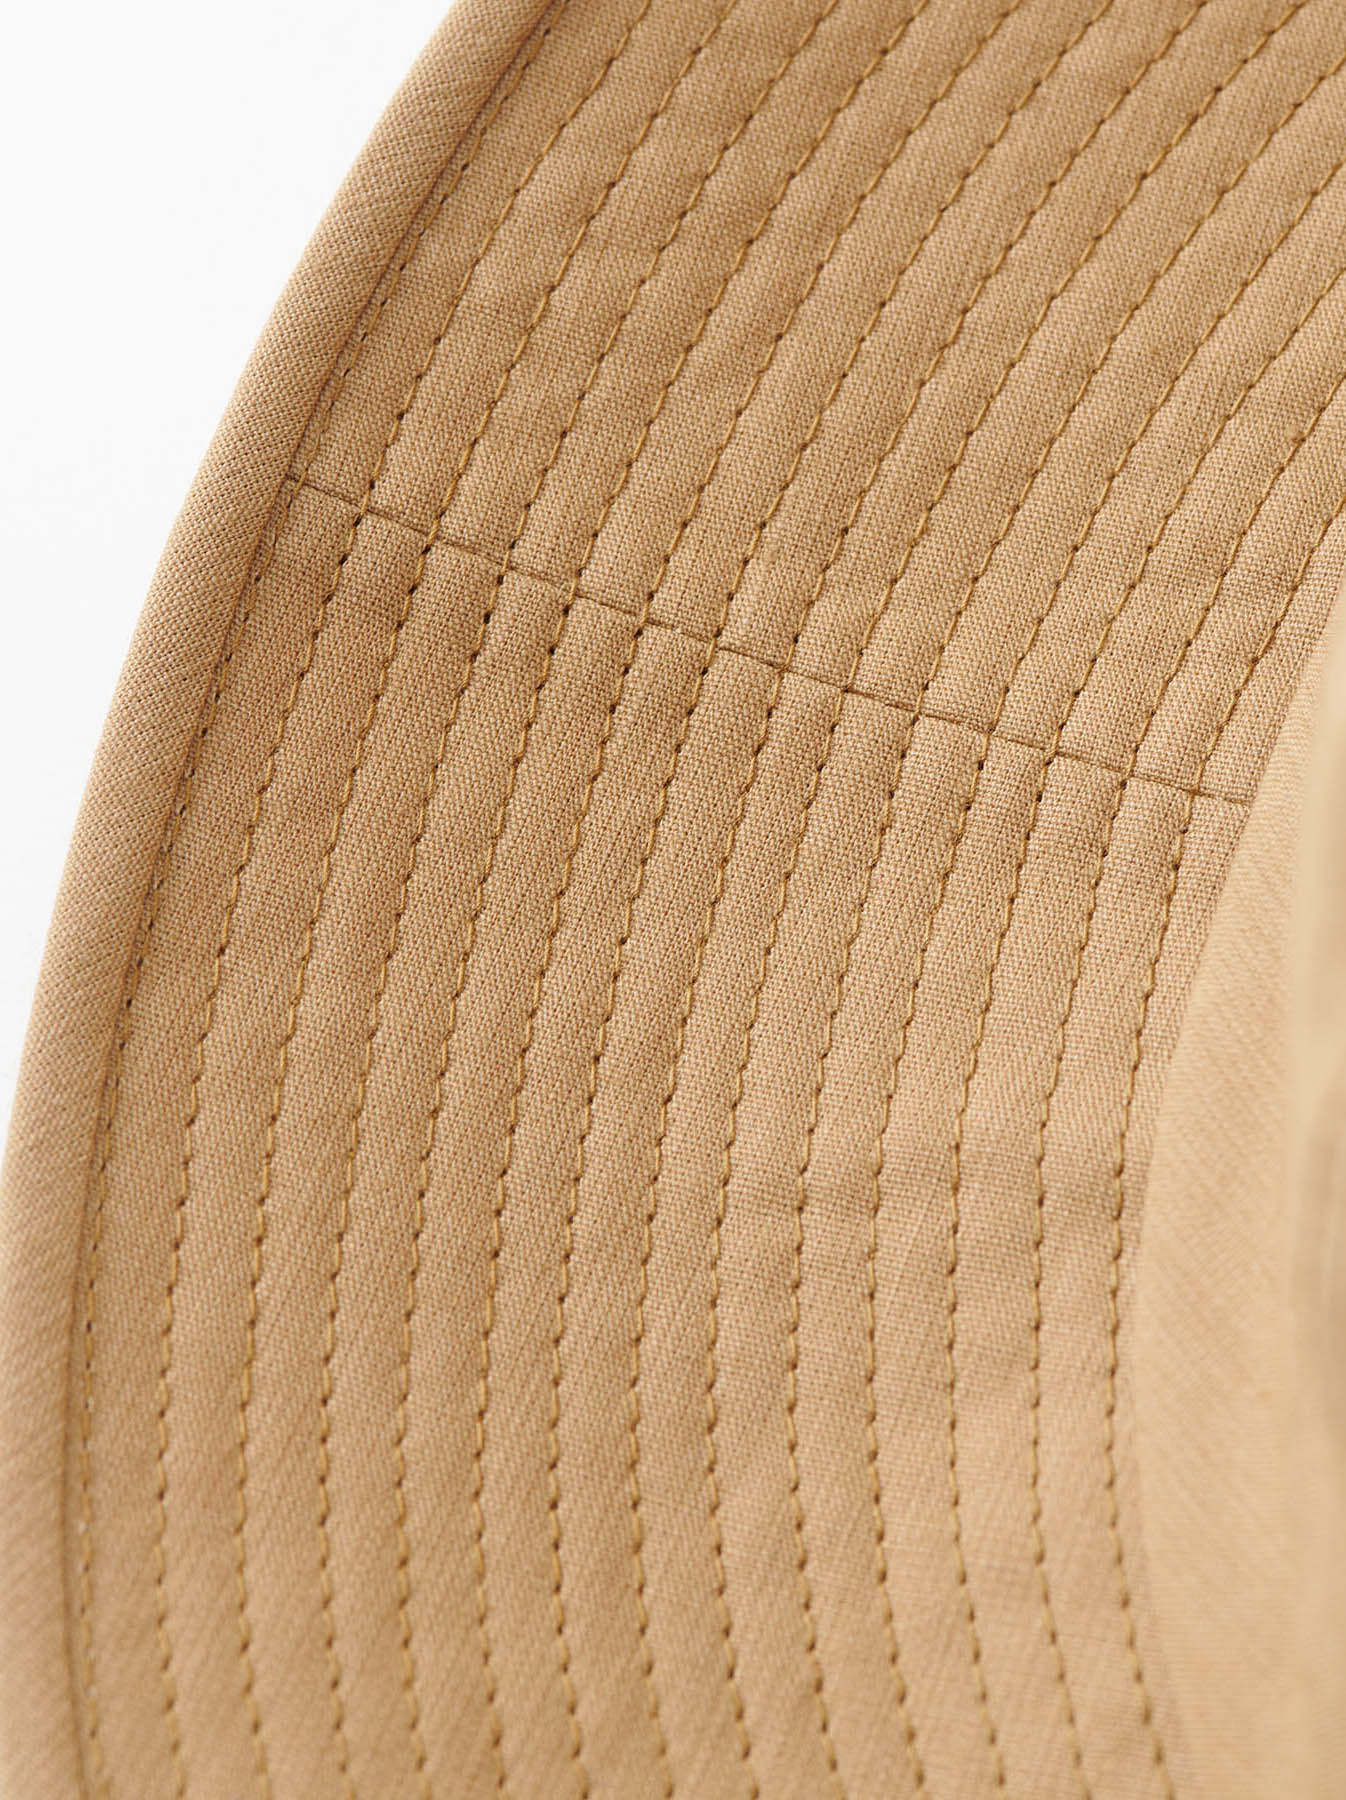 Coated Weather Cloth Hat-7